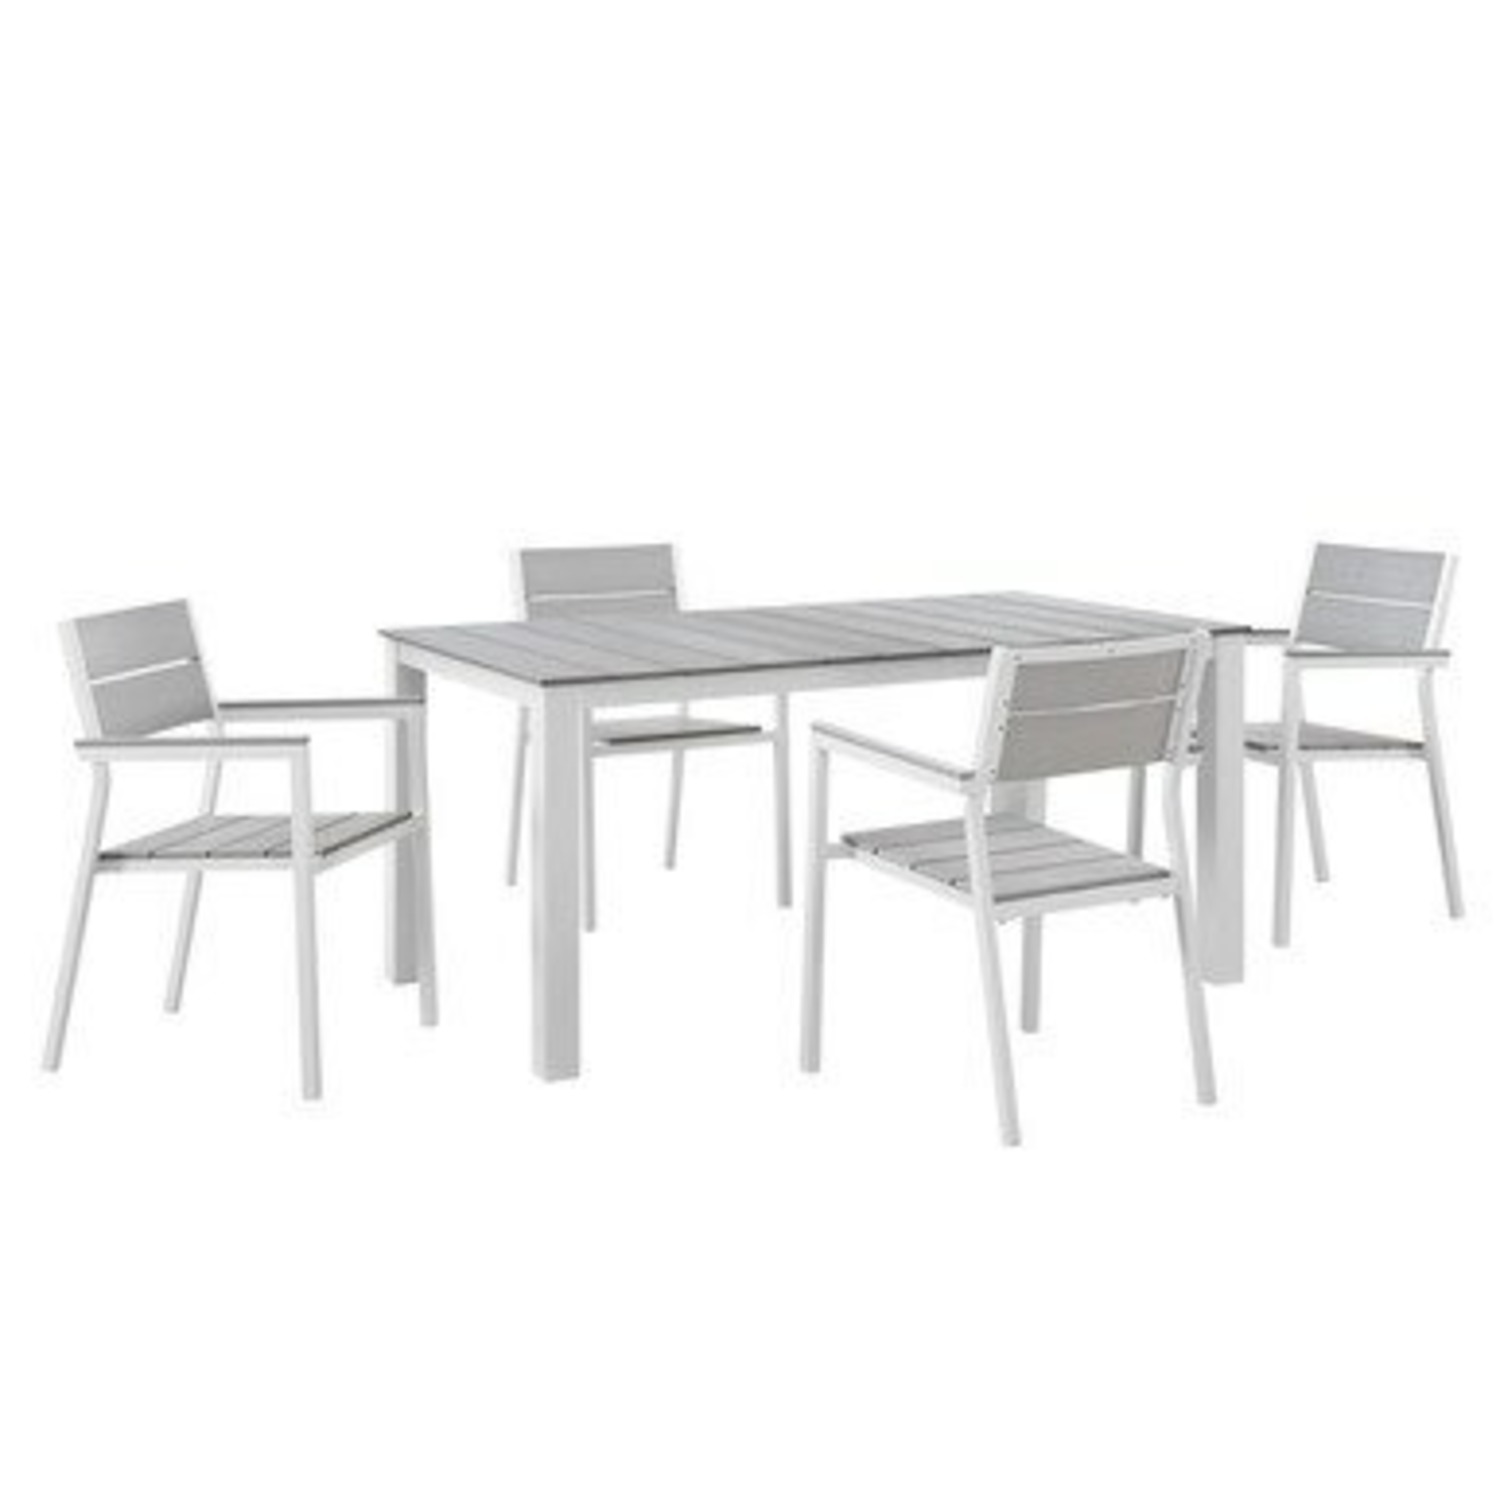 Modern 5-Piece Dining Set In Aluminum Frame - image-0